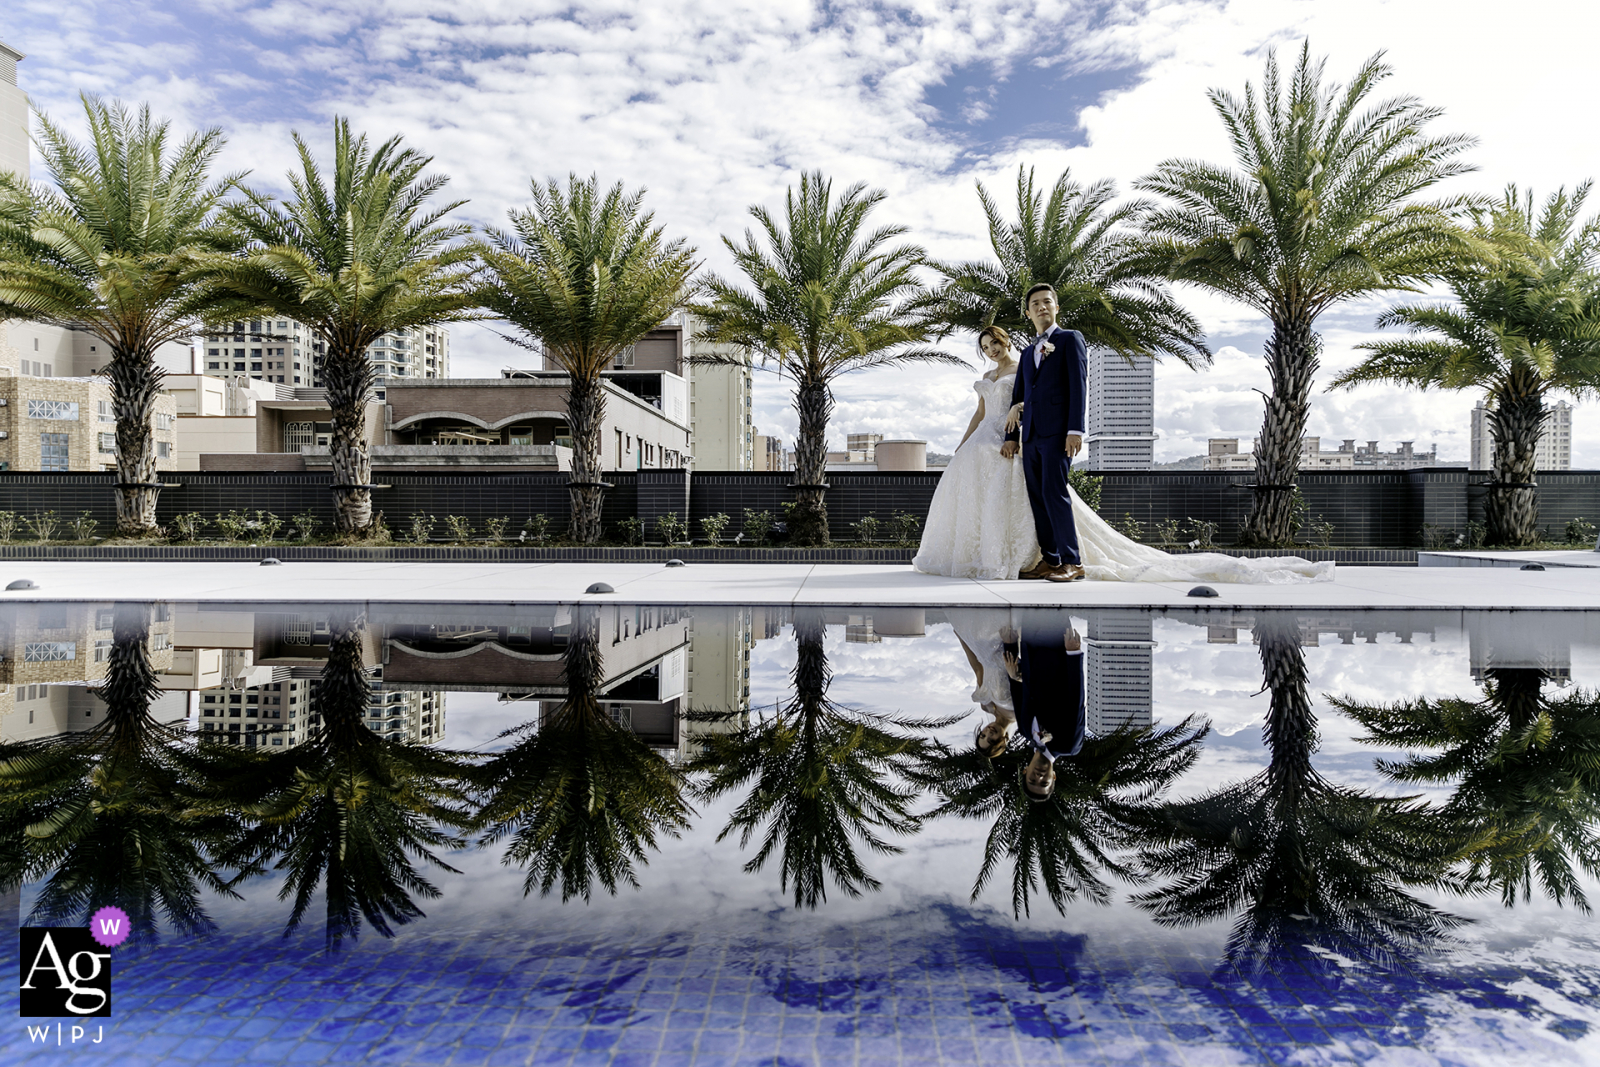 Taiwan Wedding banquet hall artistic photo from under the mirror pool reflection